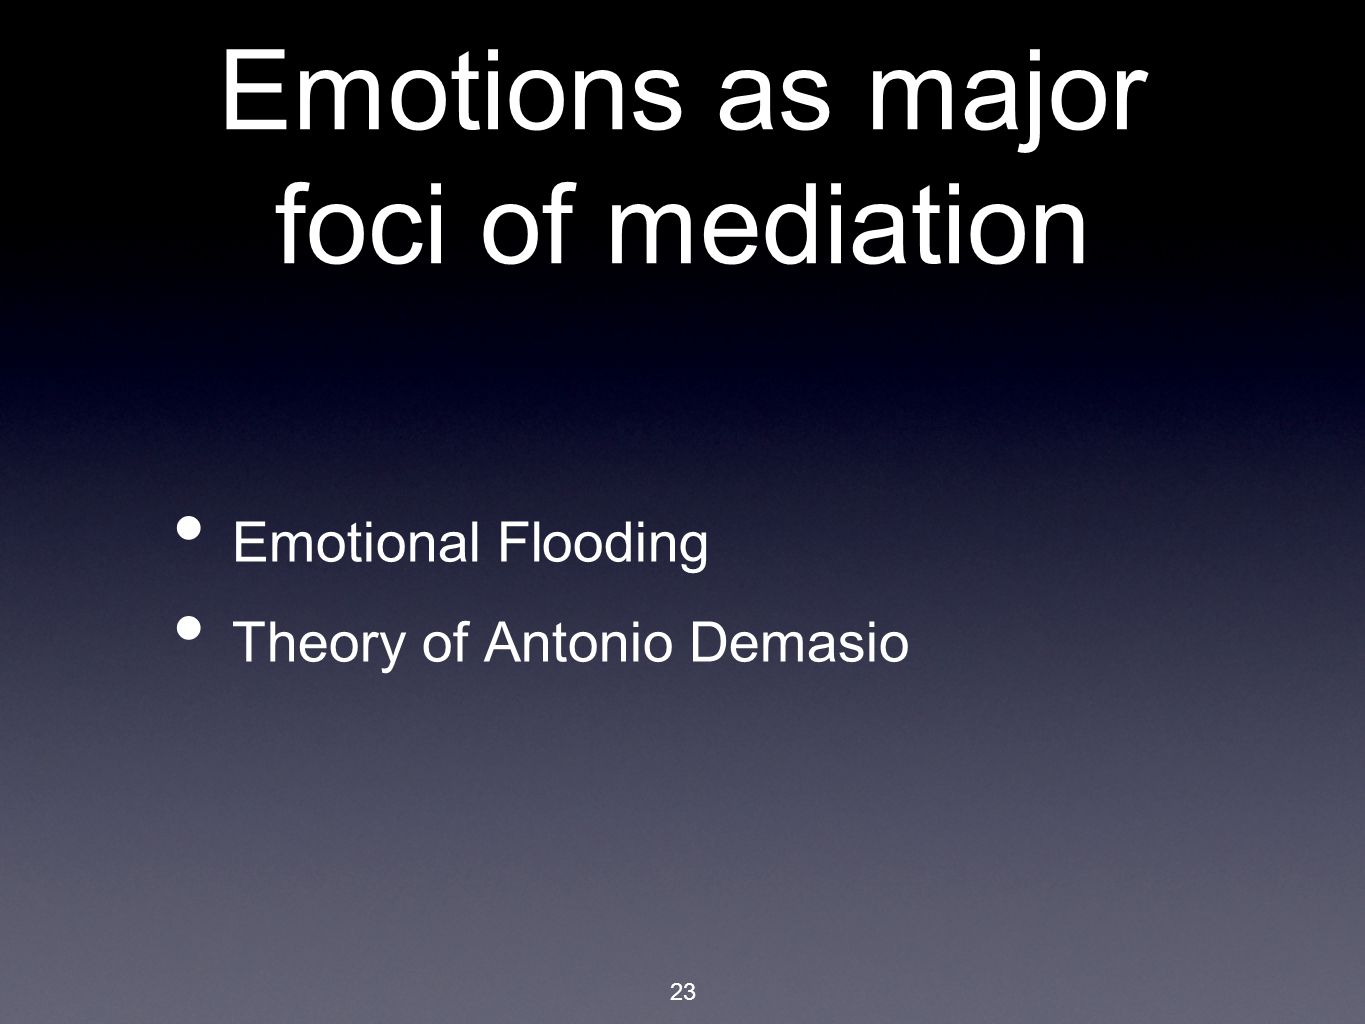 23 Emotions as major foci of mediation Emotional Flooding Theory of Antonio Demasio